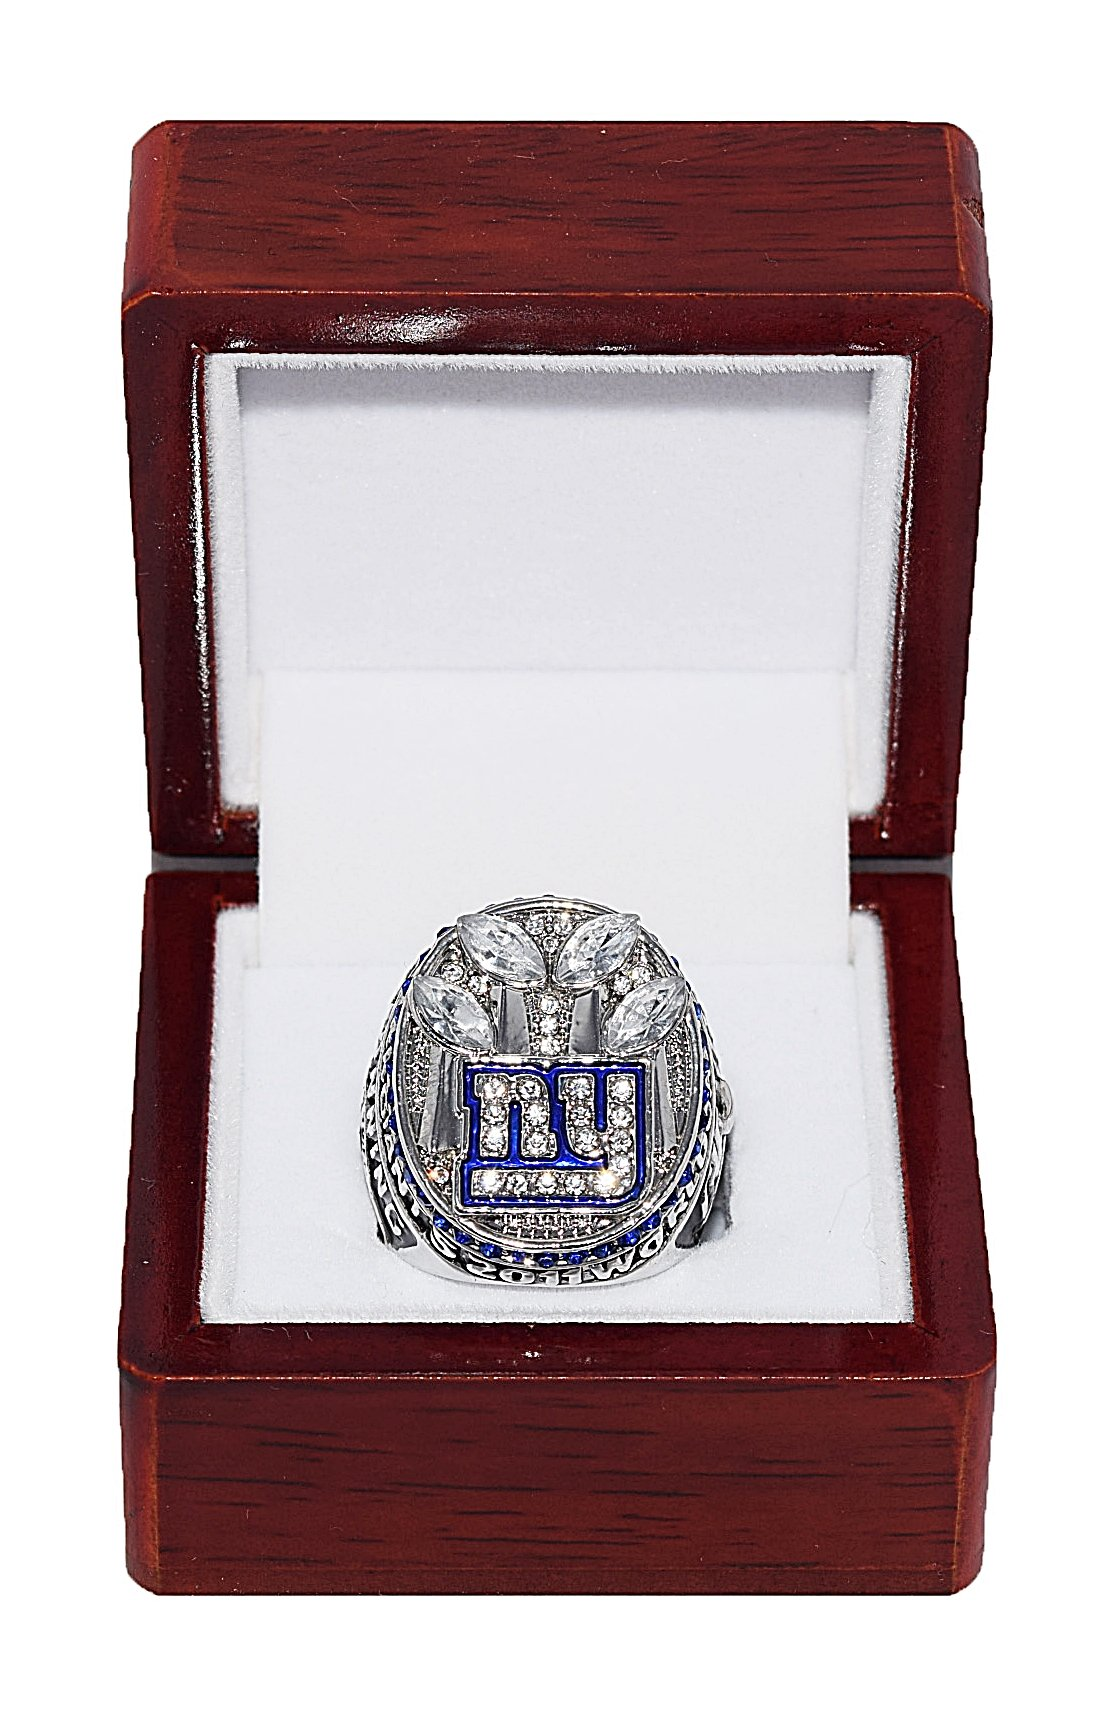 NEW YORK GIANTS (Eli Manning) 2011 SUPER BOWL XLVI WORLD CHAMPIONS (Vs. Patriots) Est. 1925 Rare & Collectible High Quality Replica NFL Football Silver Championship Ring with Cherrywood Display Box